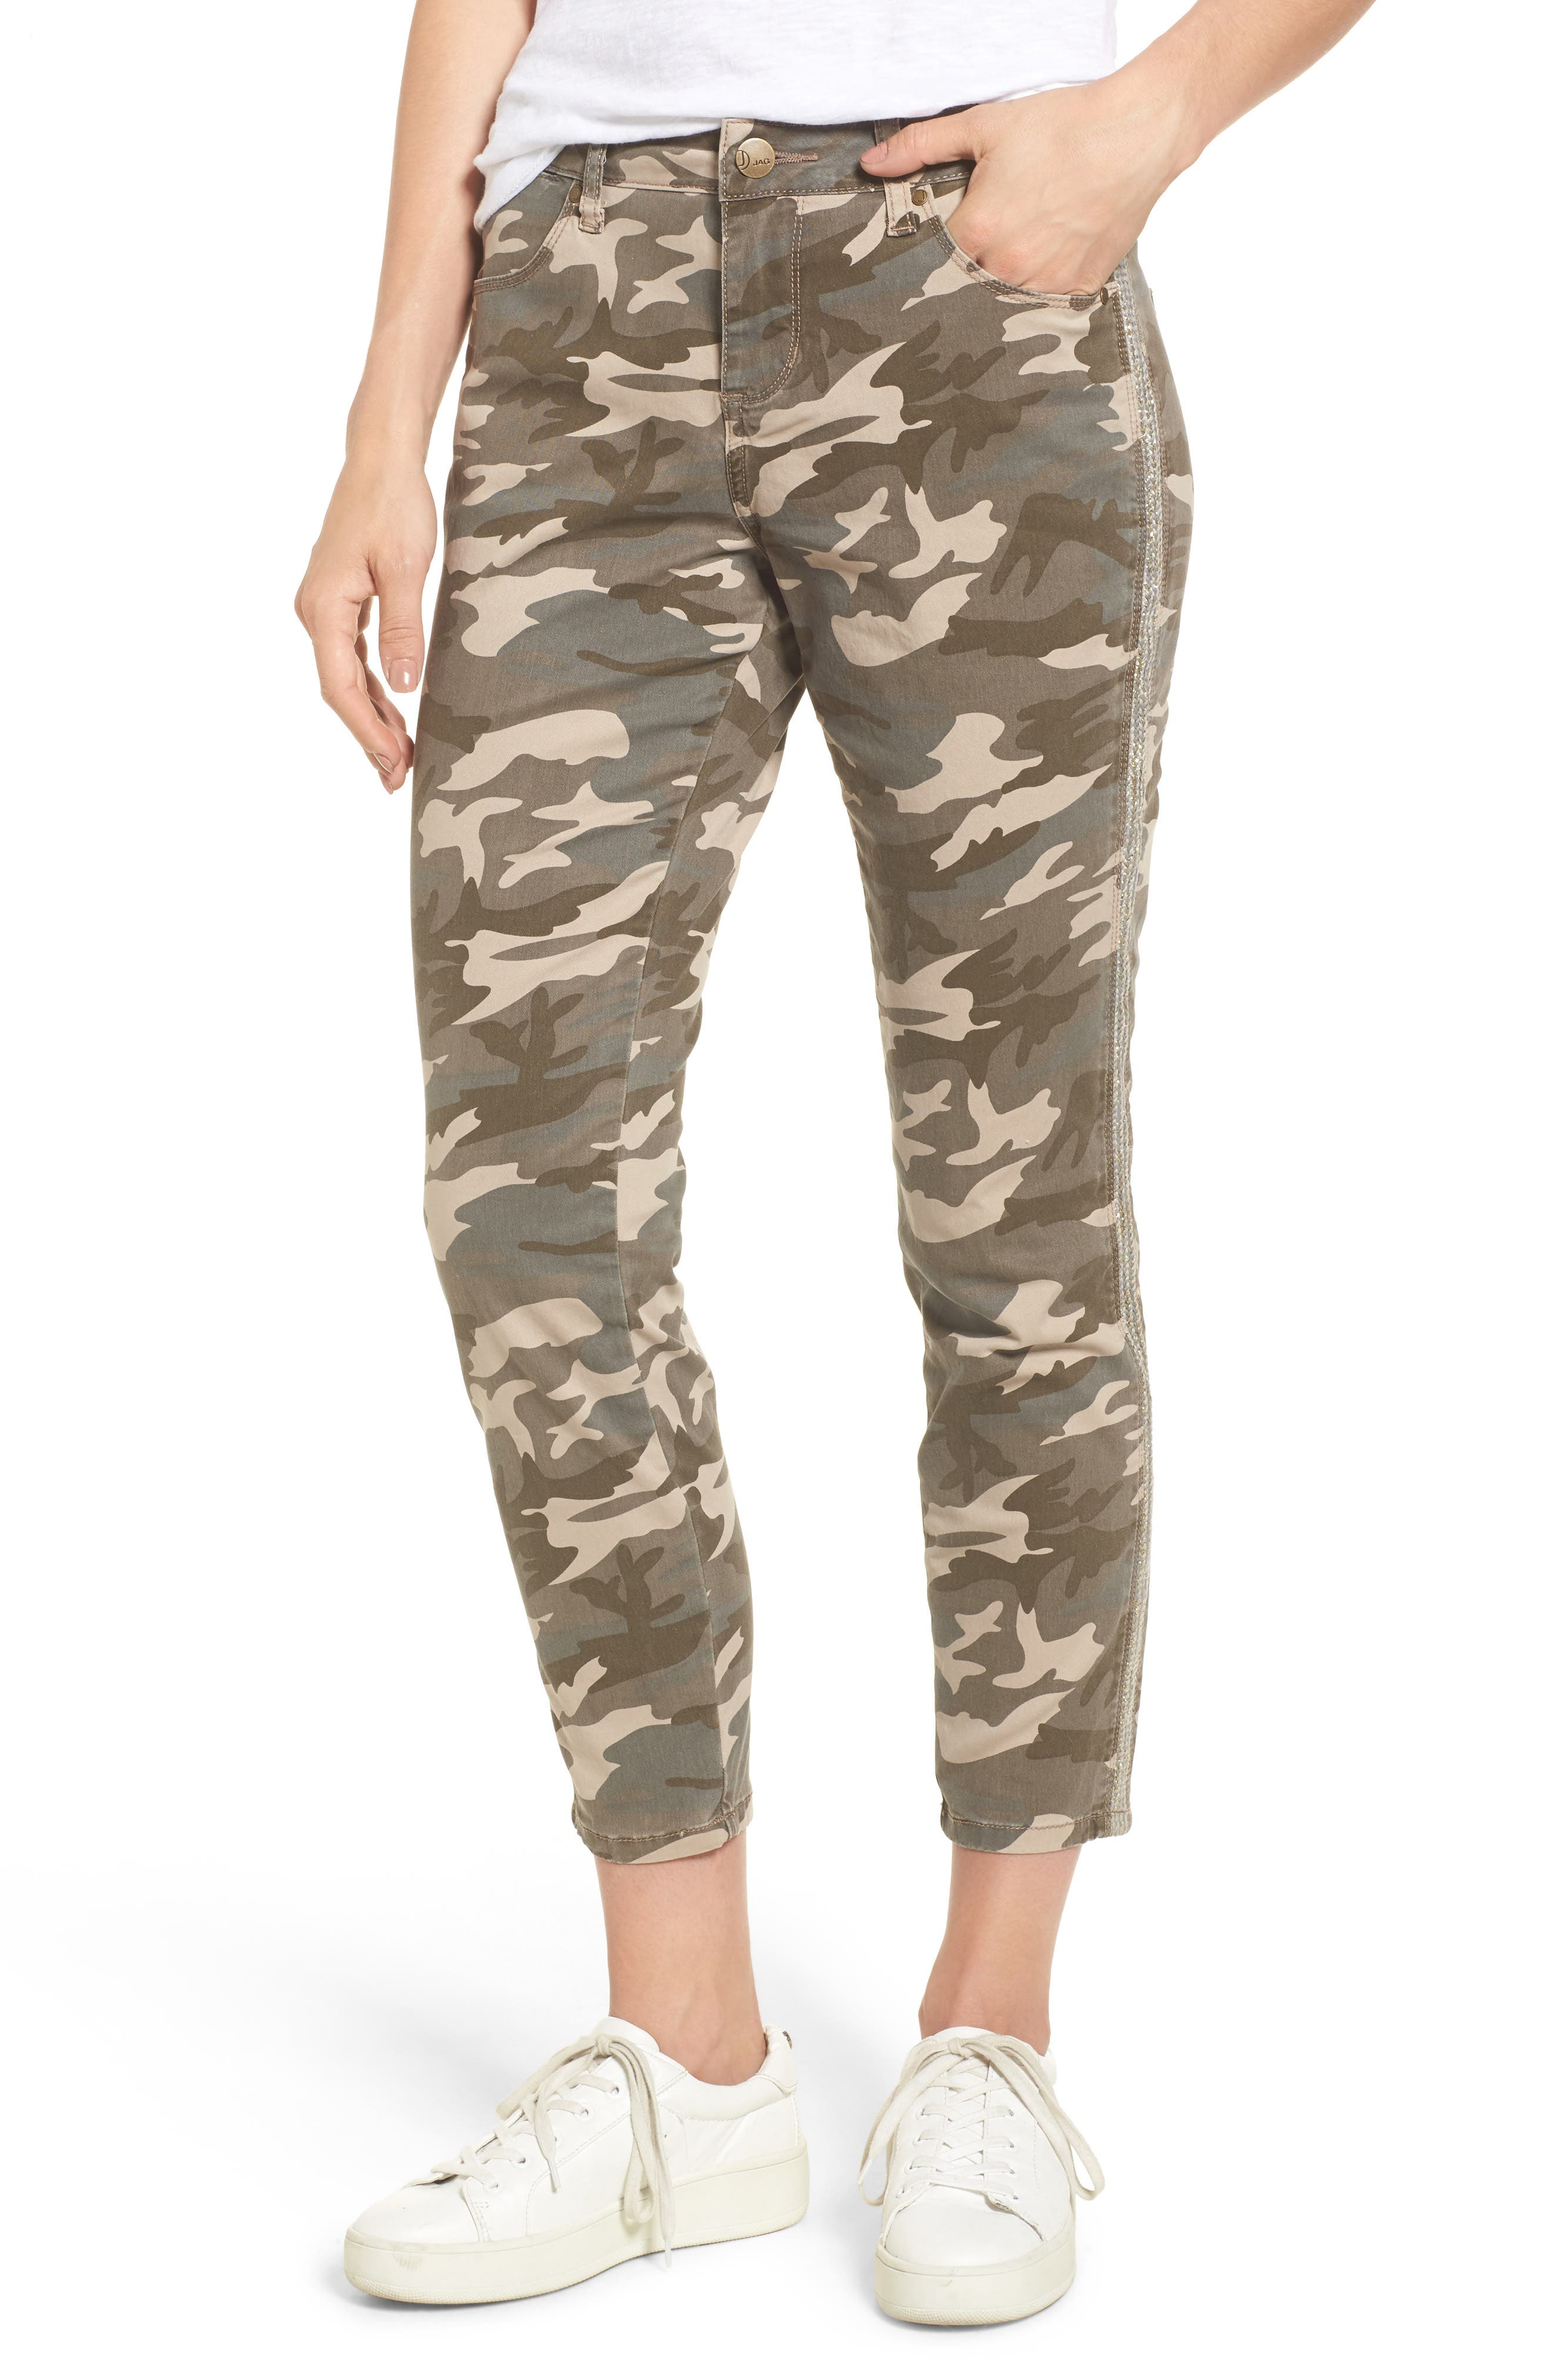 Alternate Image 1 Selected - Jag Jeans Evans Camo Skinny Pants